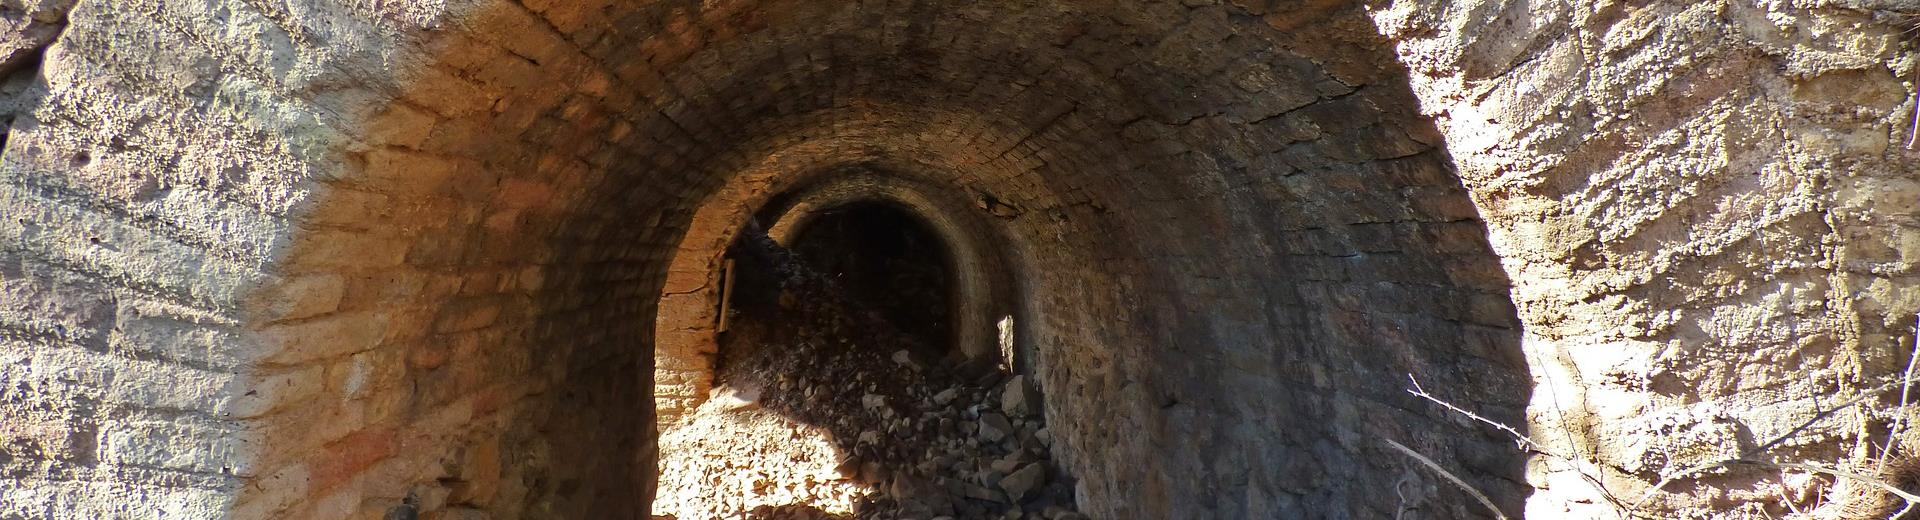 Route to the discovery of underground Turin